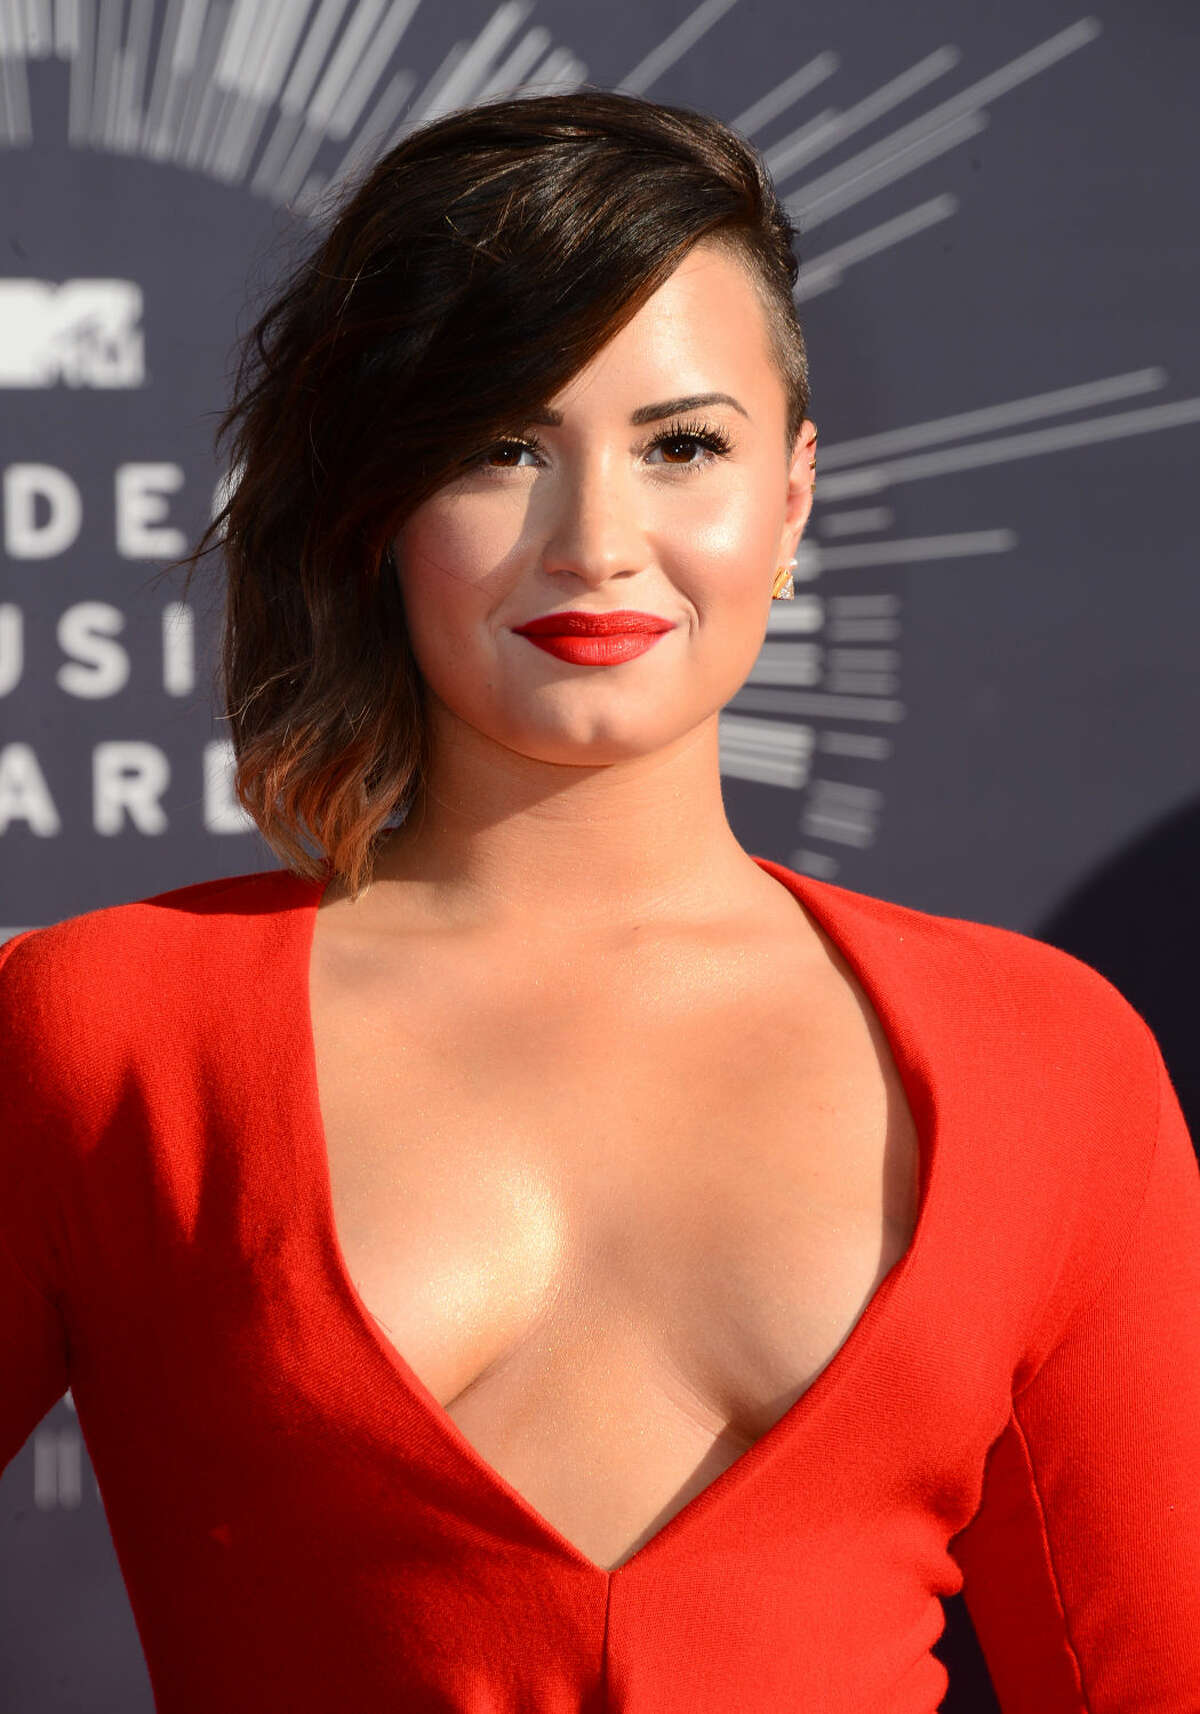 Demi Lovato arrives at the MTV Video Music Awards at The Forum on Sunday, Aug. 24, 2014, in Inglewood, Calif. (Photo by Jordan Strauss/Invision/AP)